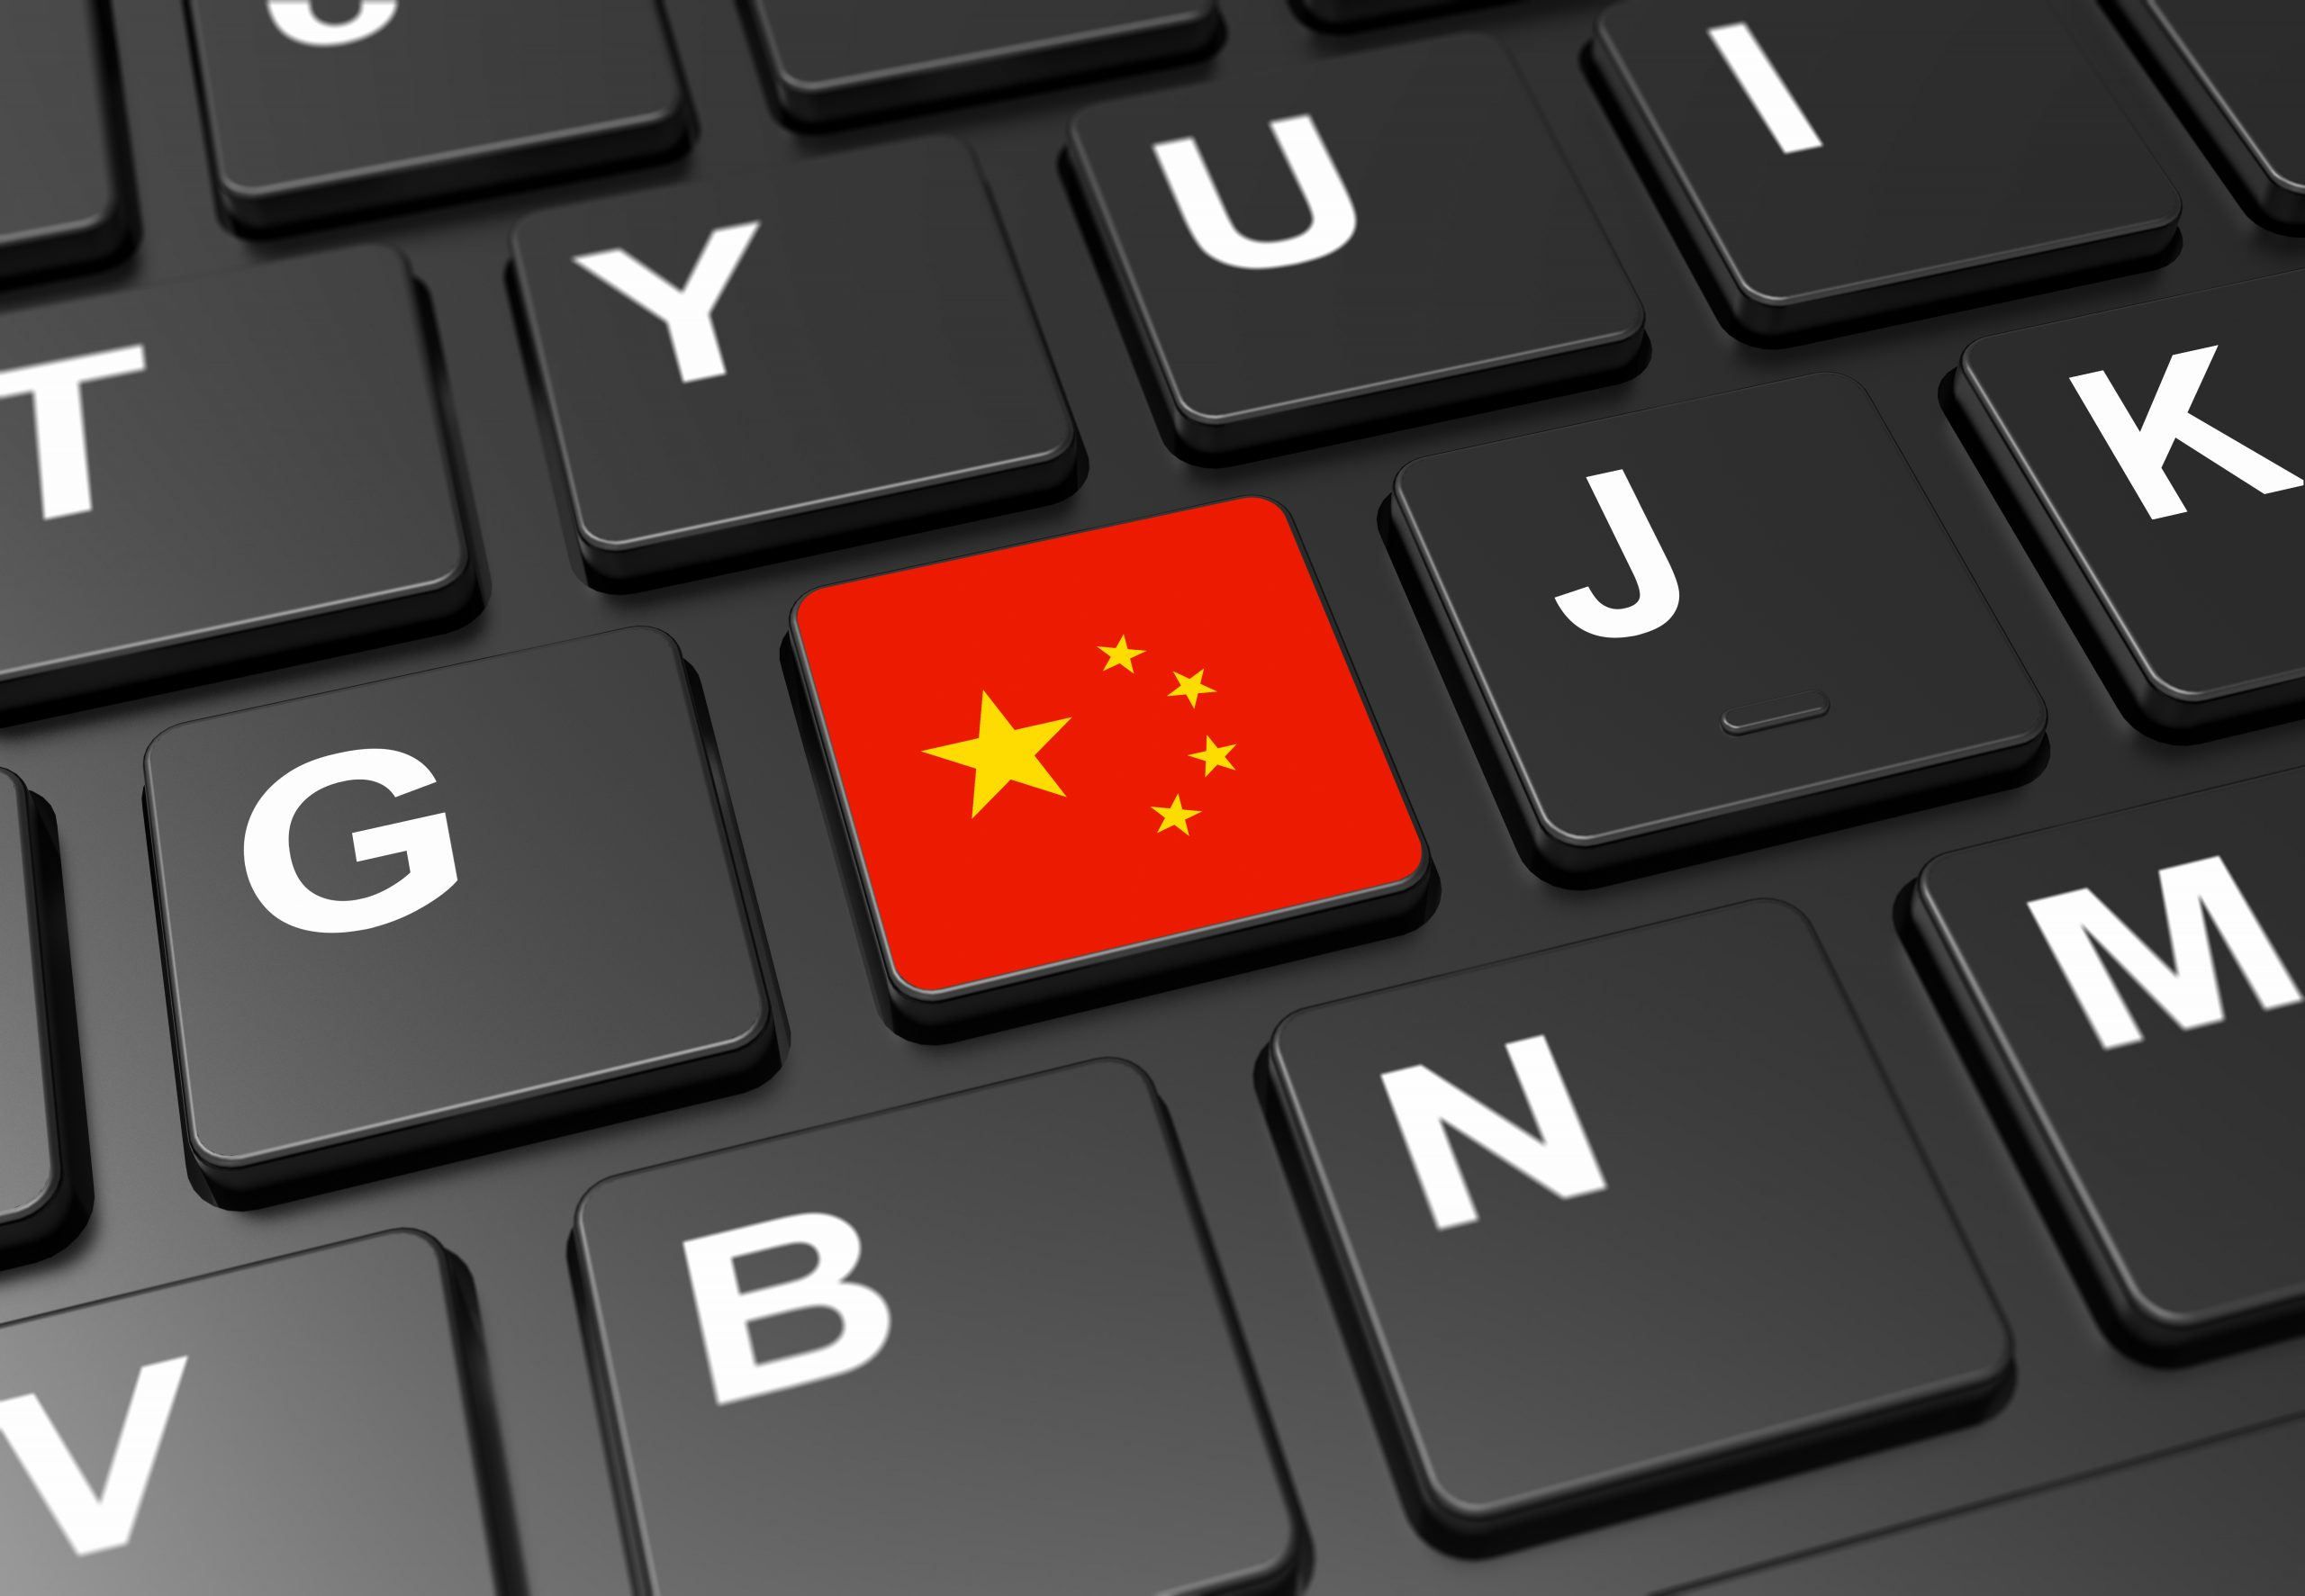 PREPARING A CLIENT'S WEBSITES FOR USE IN CHINA MAINLAND